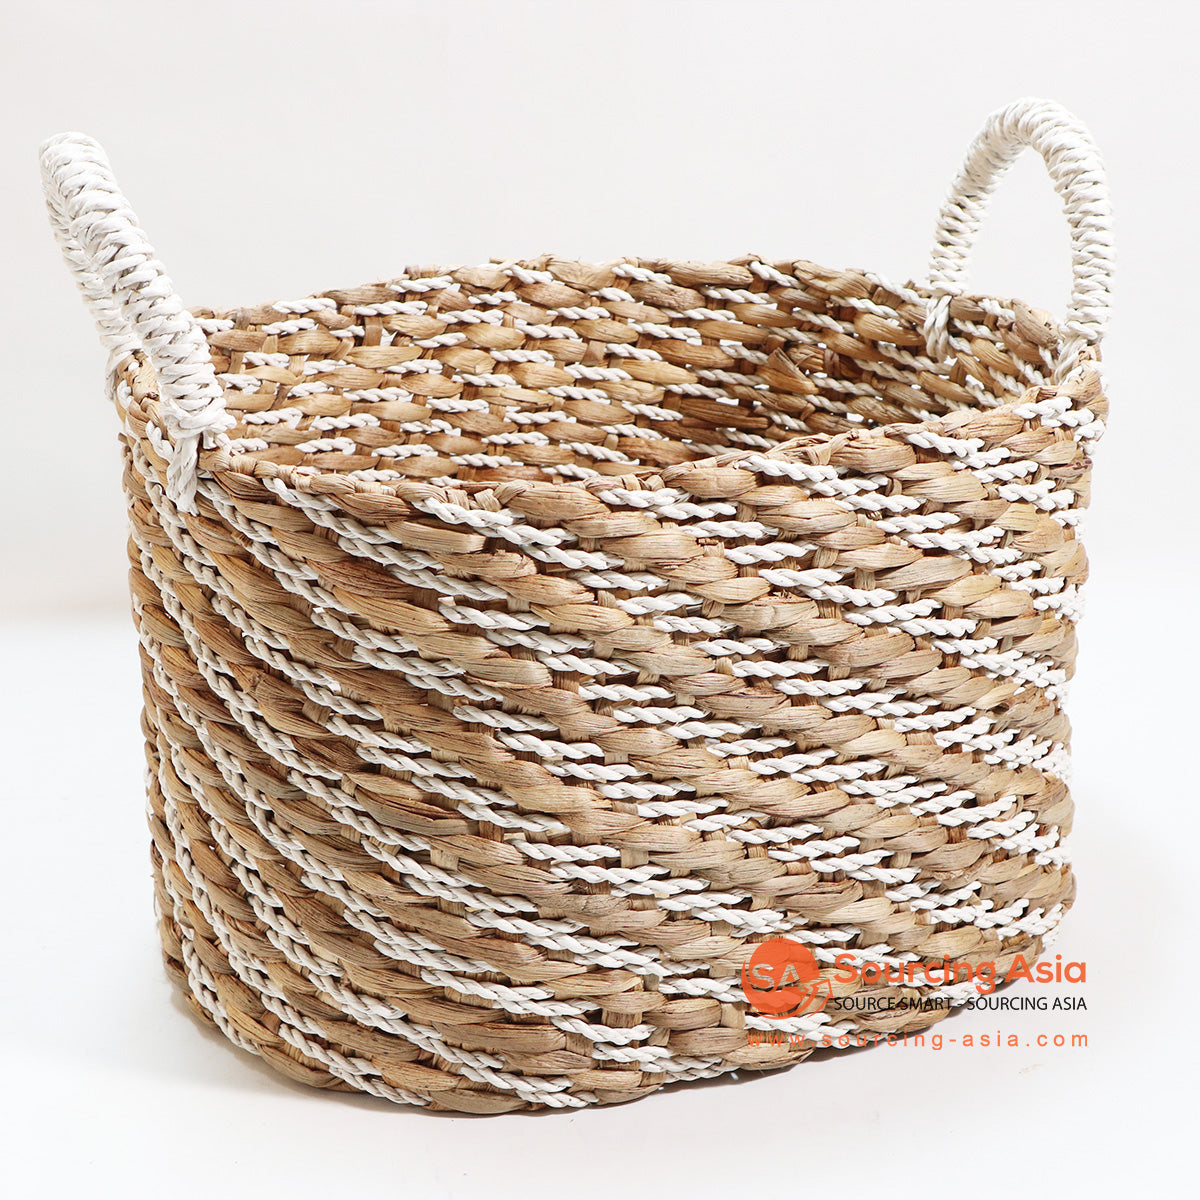 HBSC127-1 WATER HYACINTH AND RAFFIA BASKET NATURAL & WHITE